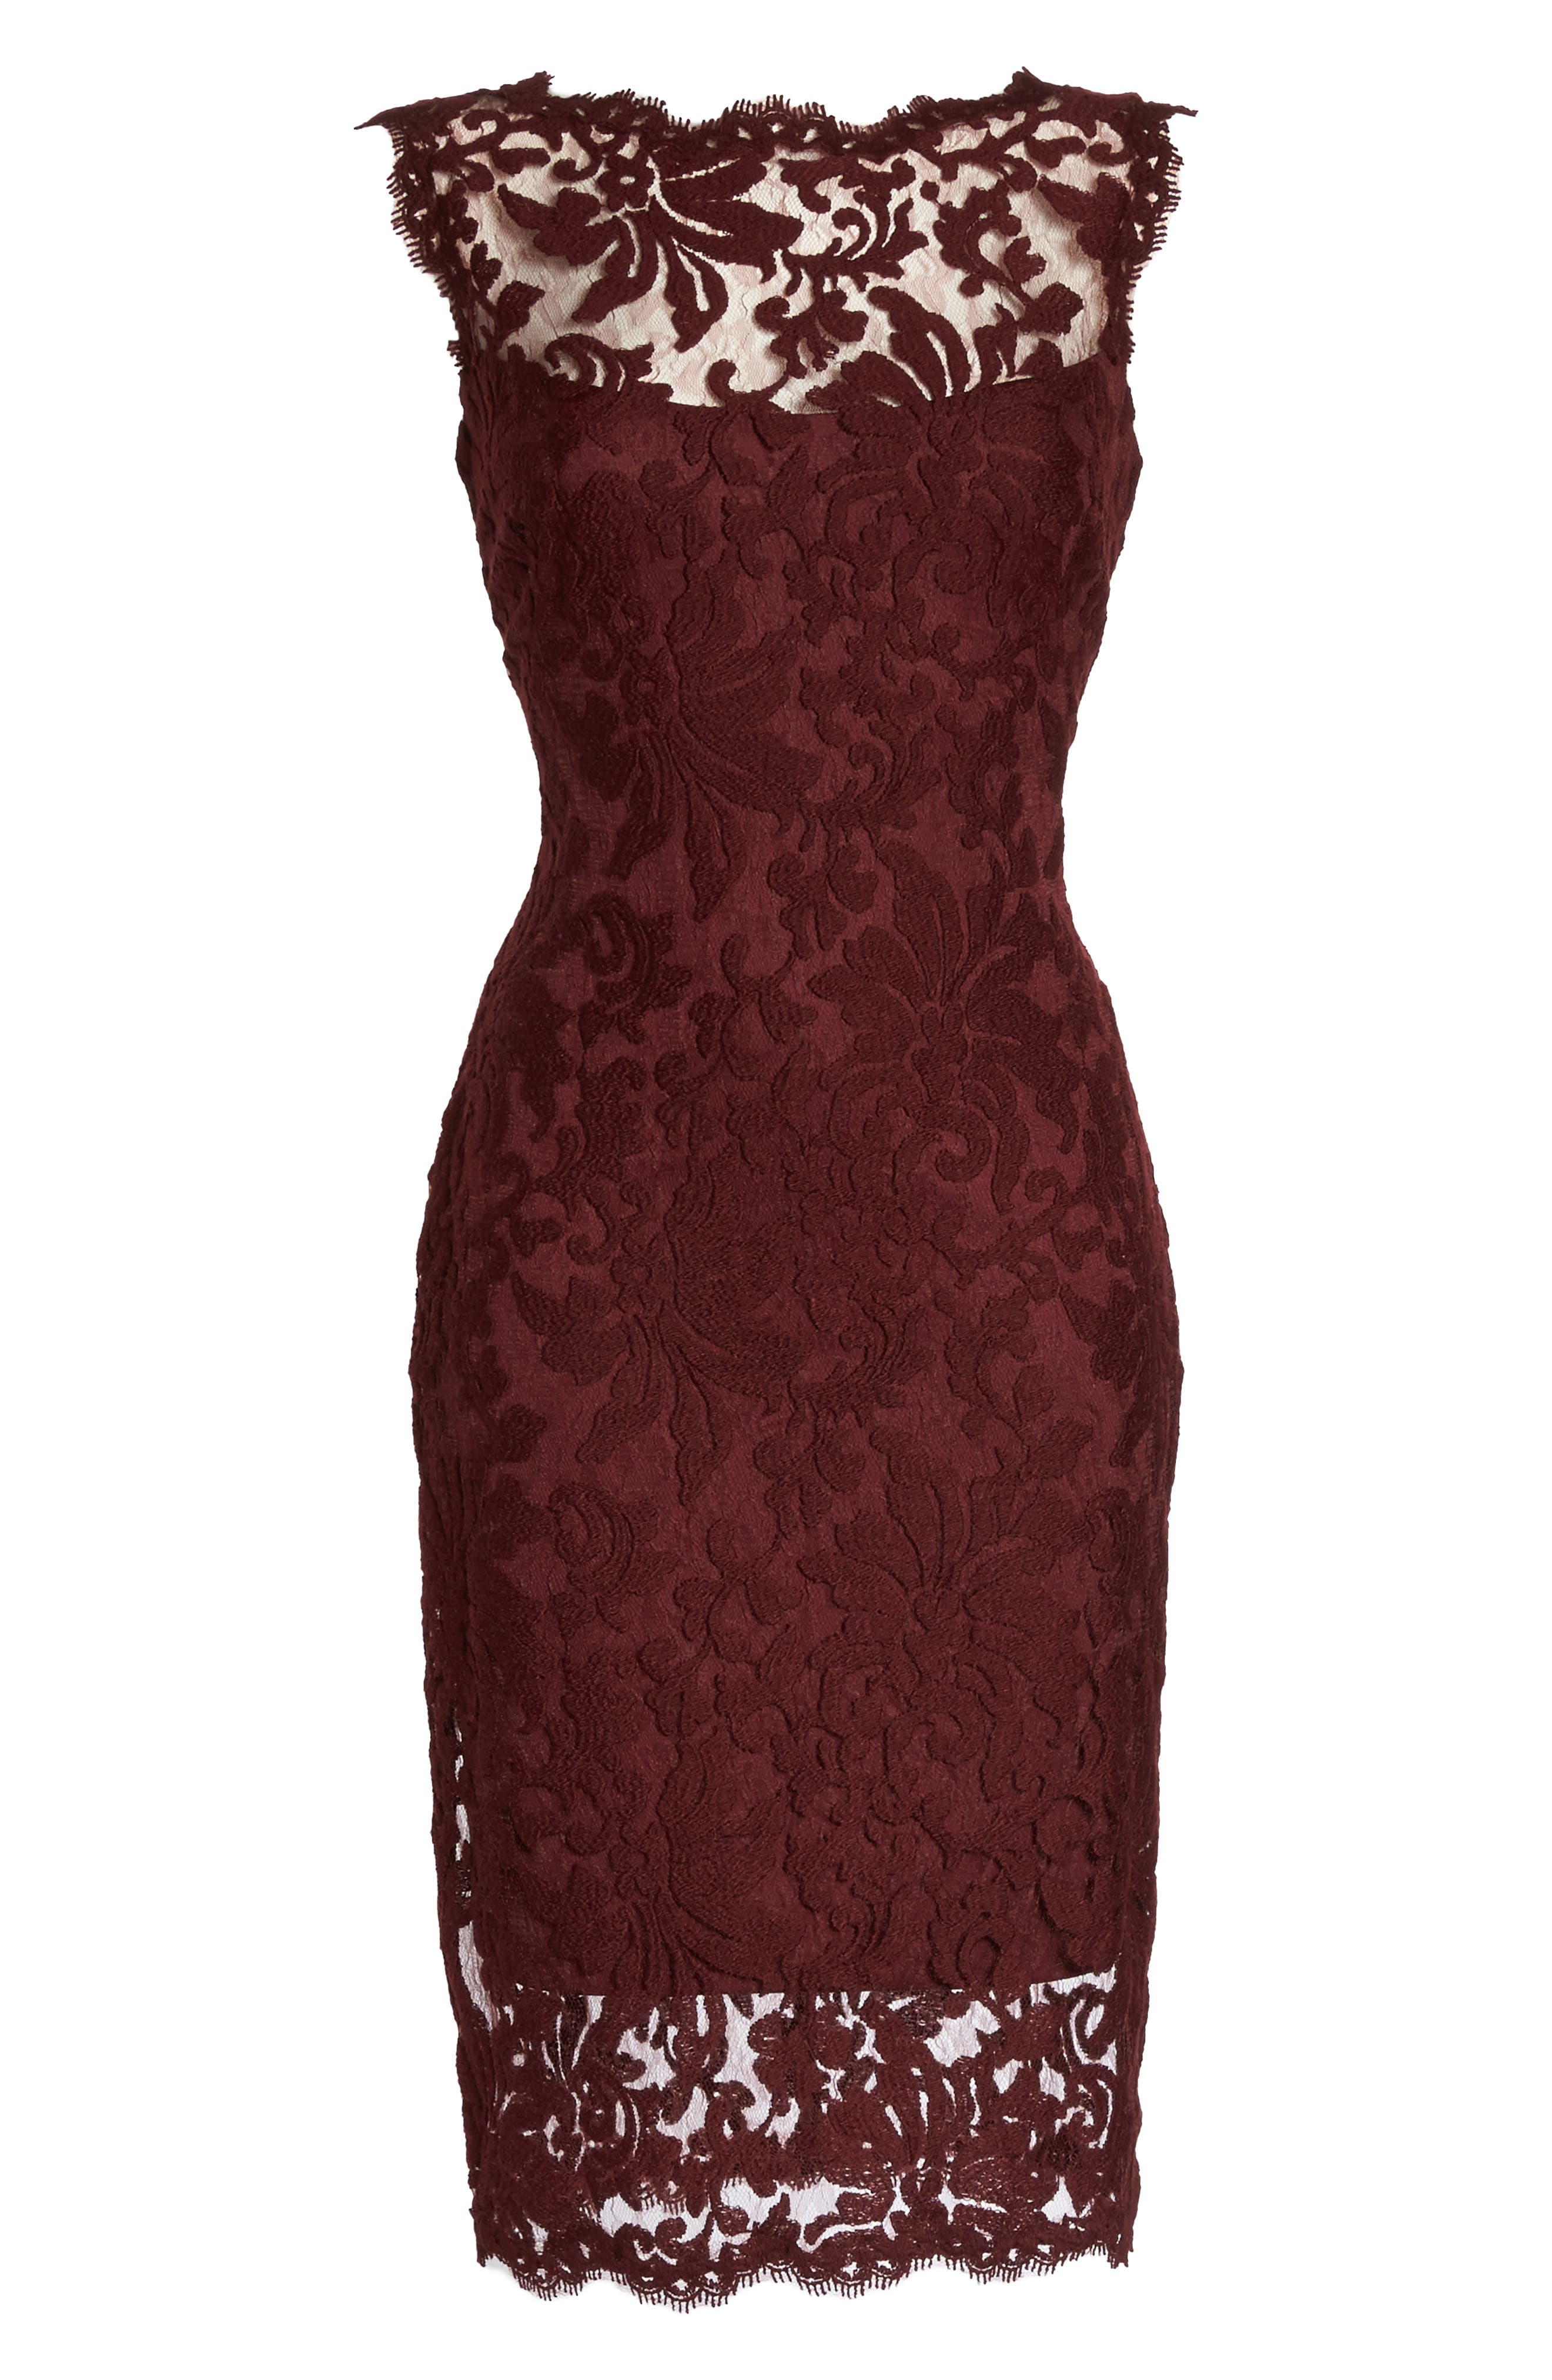 Embroidered Lace Sheath Dress,                             Alternate thumbnail 6, color,                             931